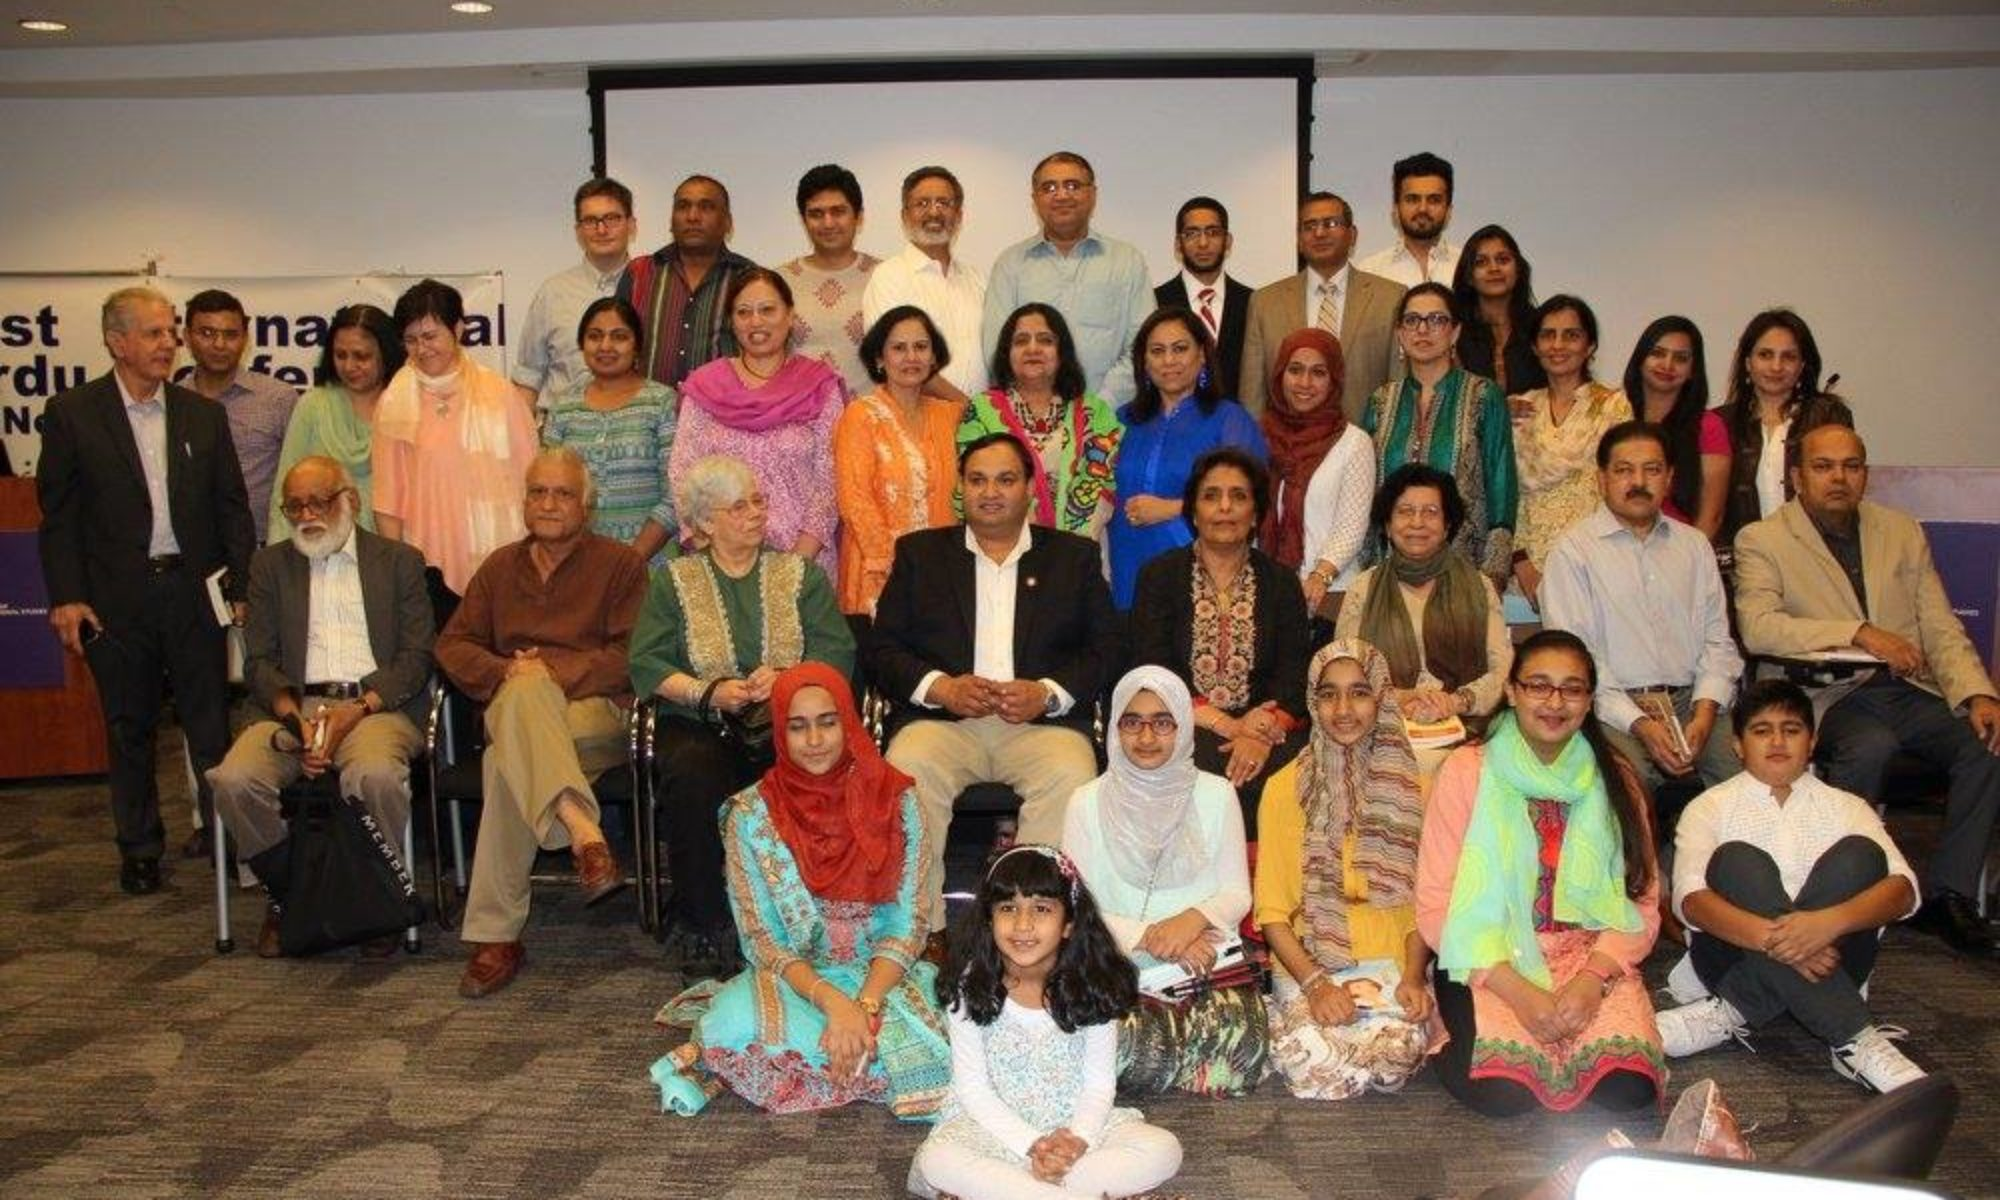 National Youth Organization of Pakistan - USA